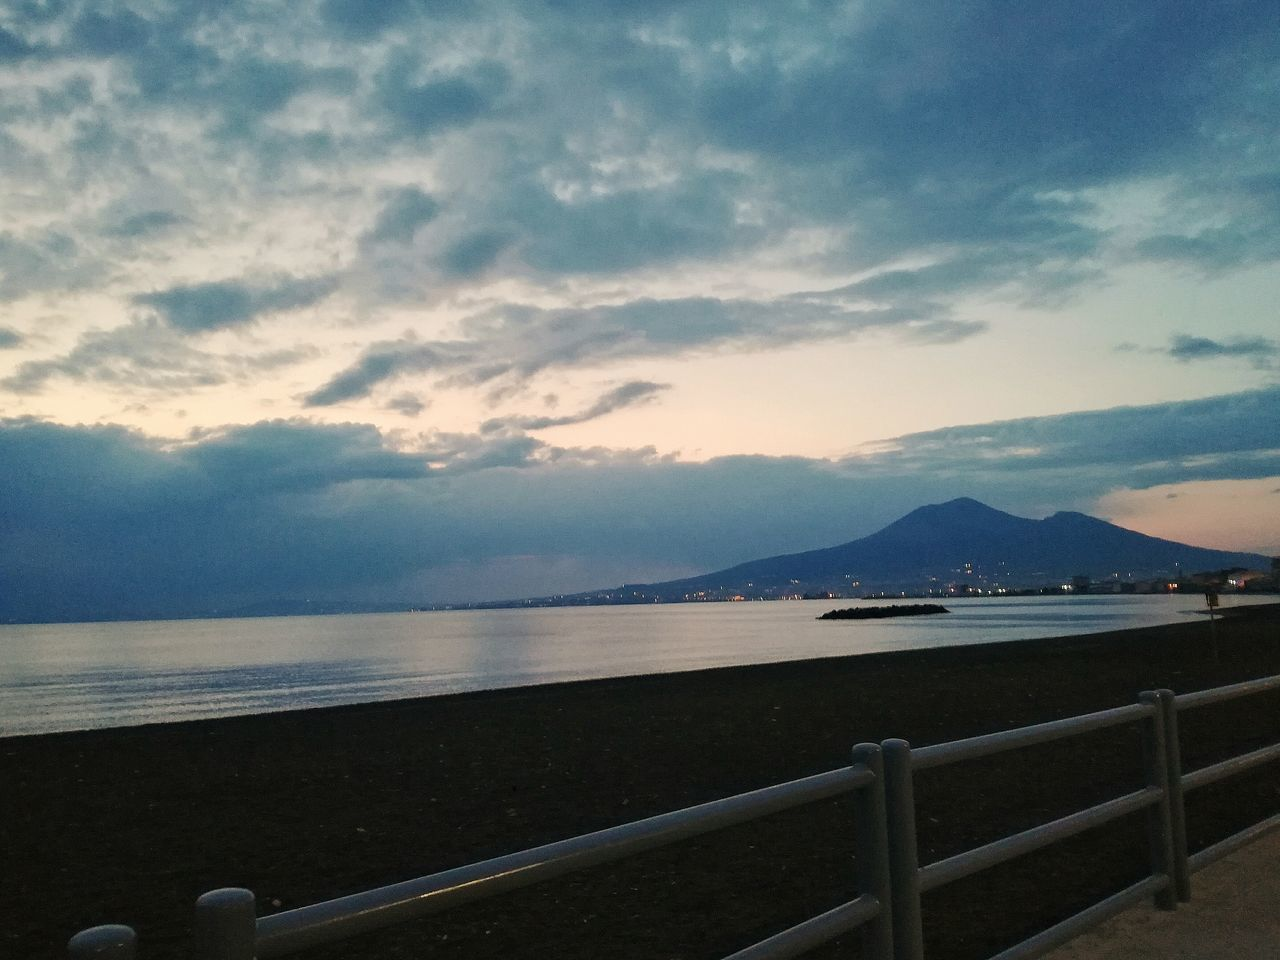 sea, water, sky, railing, scenics, cloud - sky, tranquil scene, horizon over water, mountain, tranquility, beauty in nature, nature, outdoors, beach, sunset, no people, day